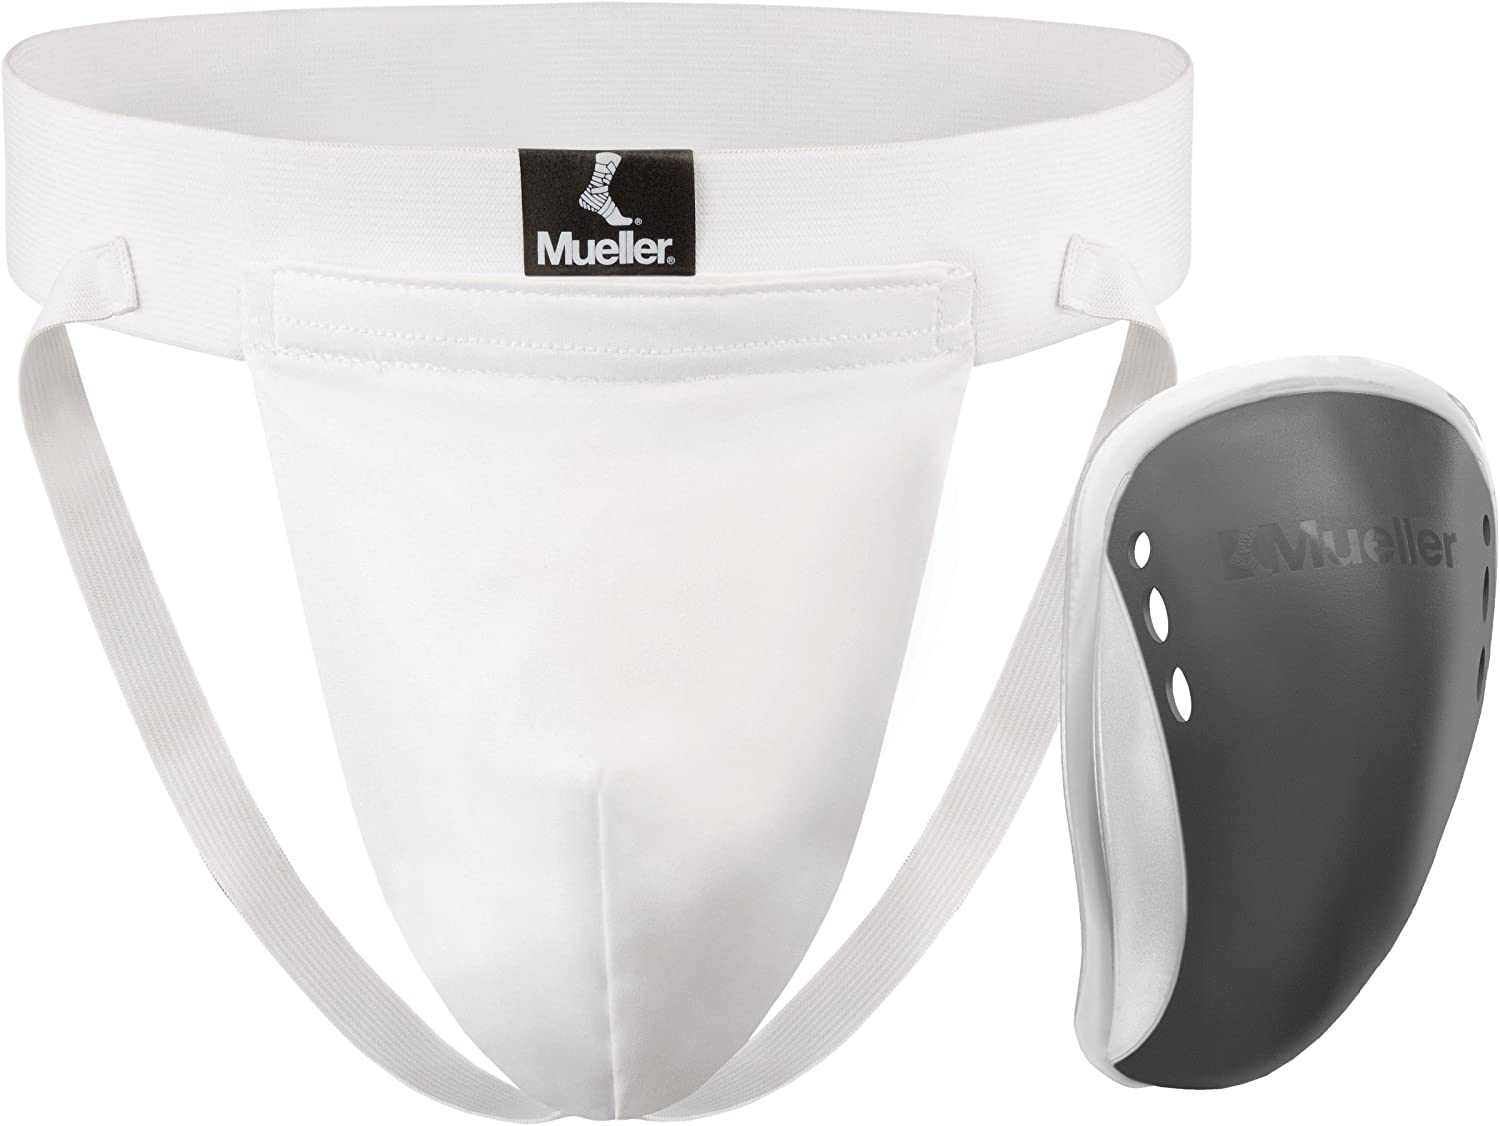 Mueller Adult Athletic Supporter with Flex Shield Cup, White/Gray, Adult Extra Large